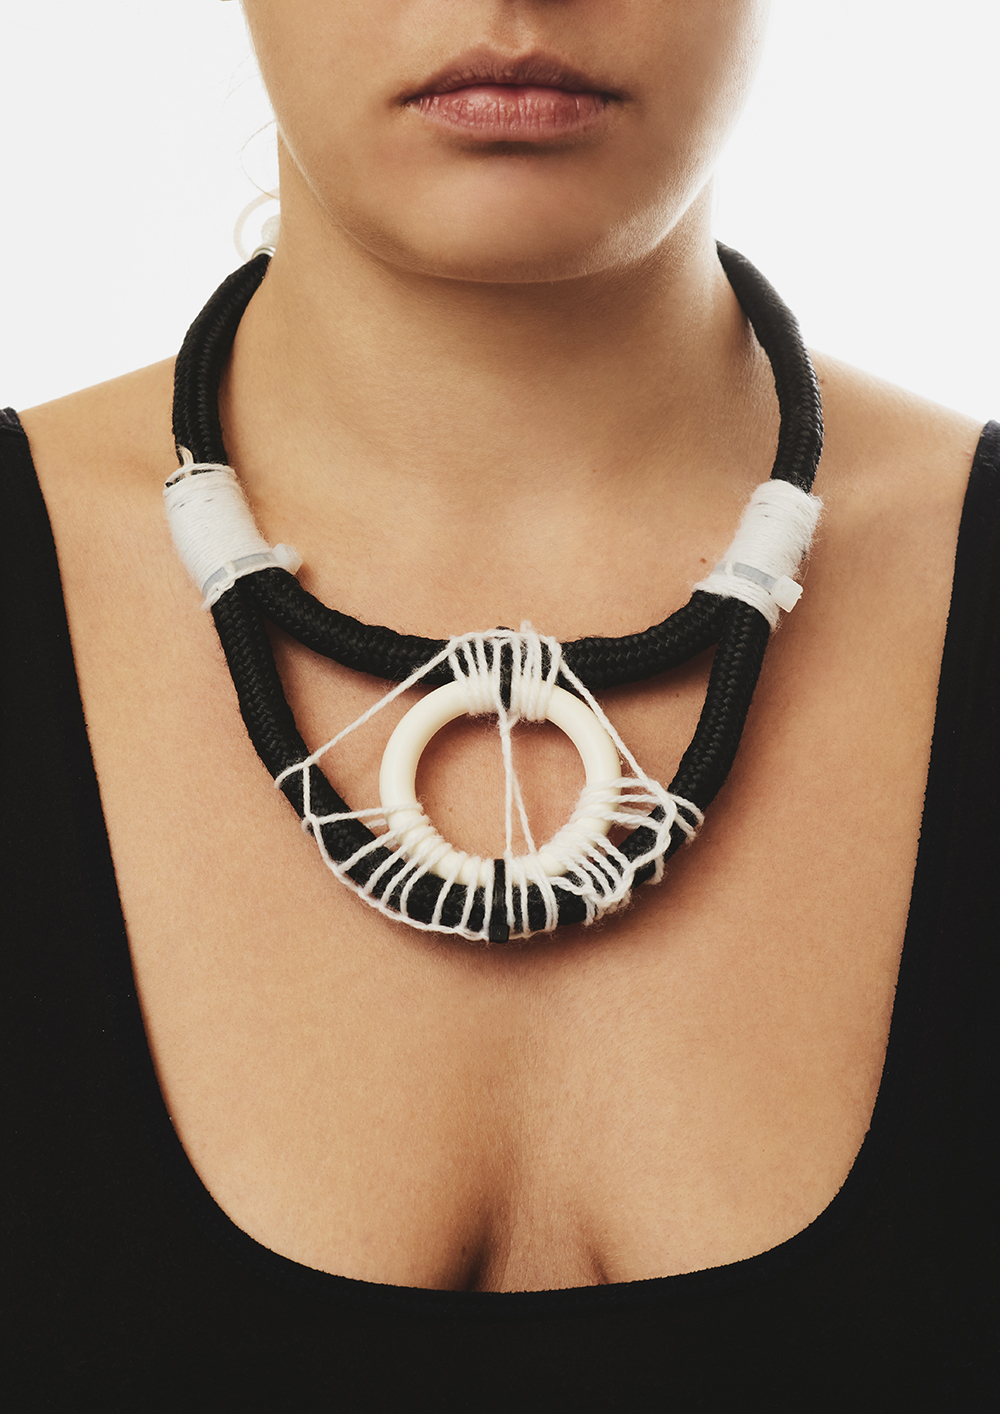 Blackoutlabel necklaces summerly 634